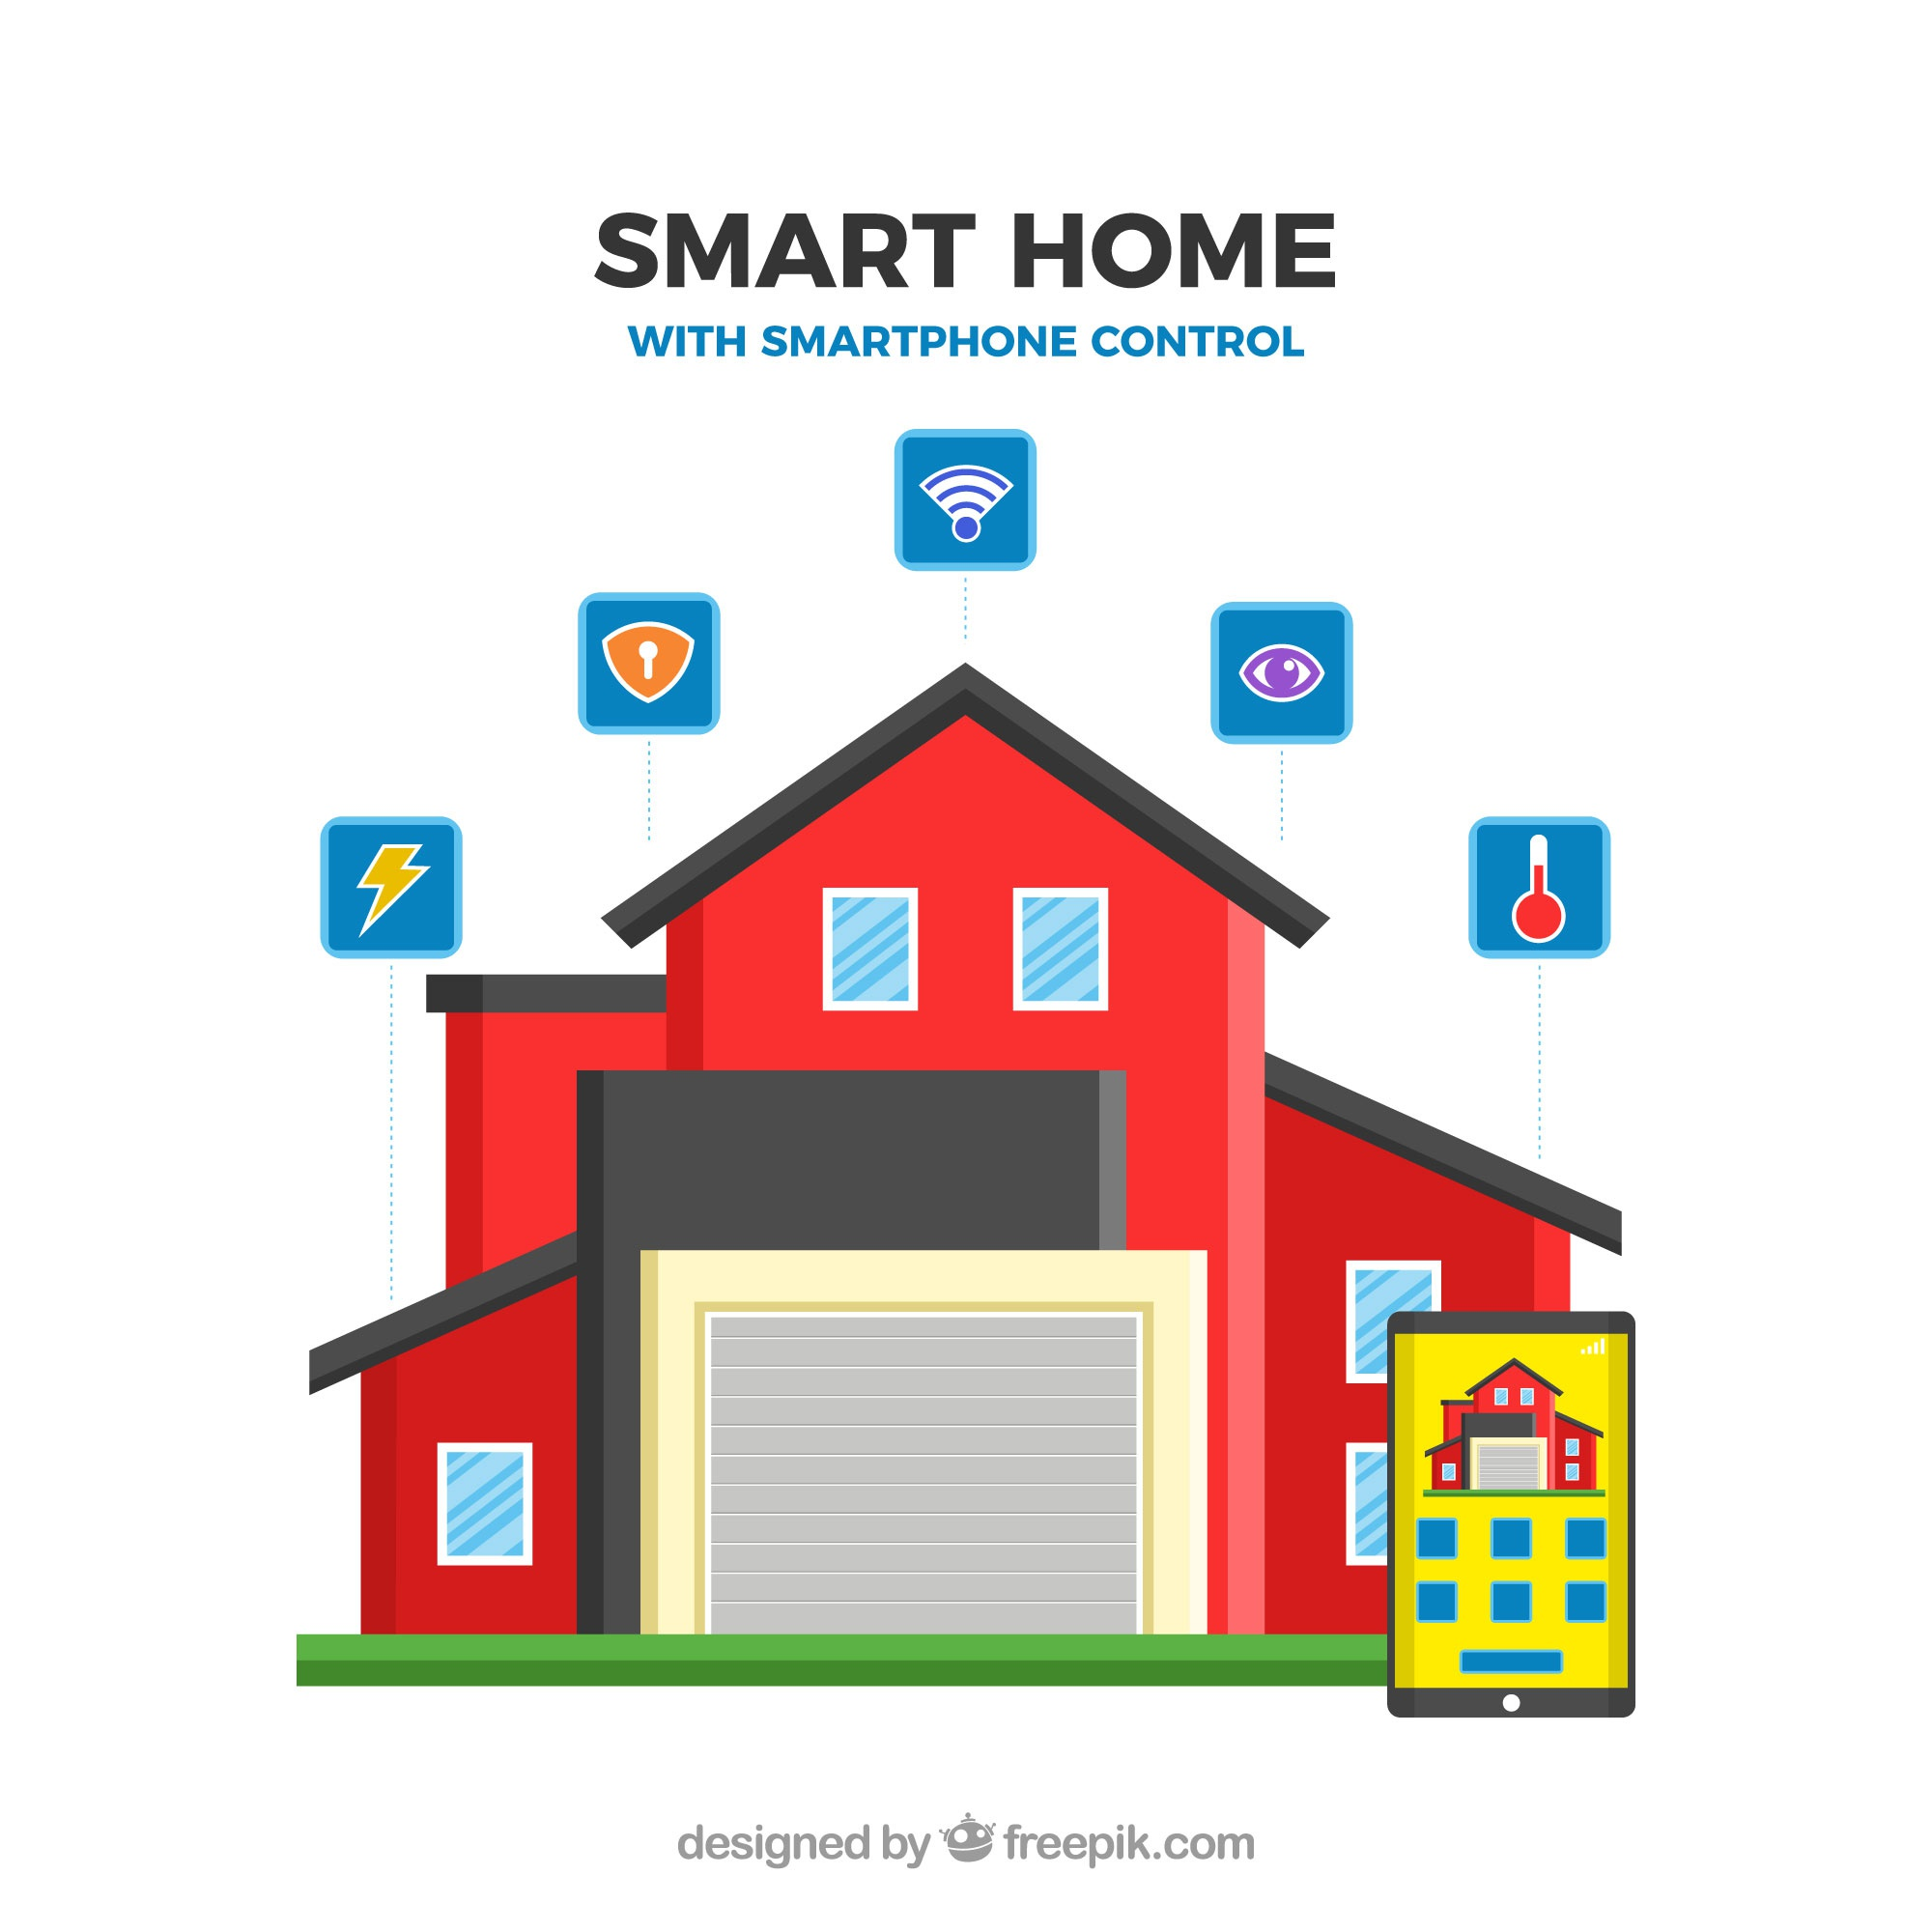 Smart home with smartphone control